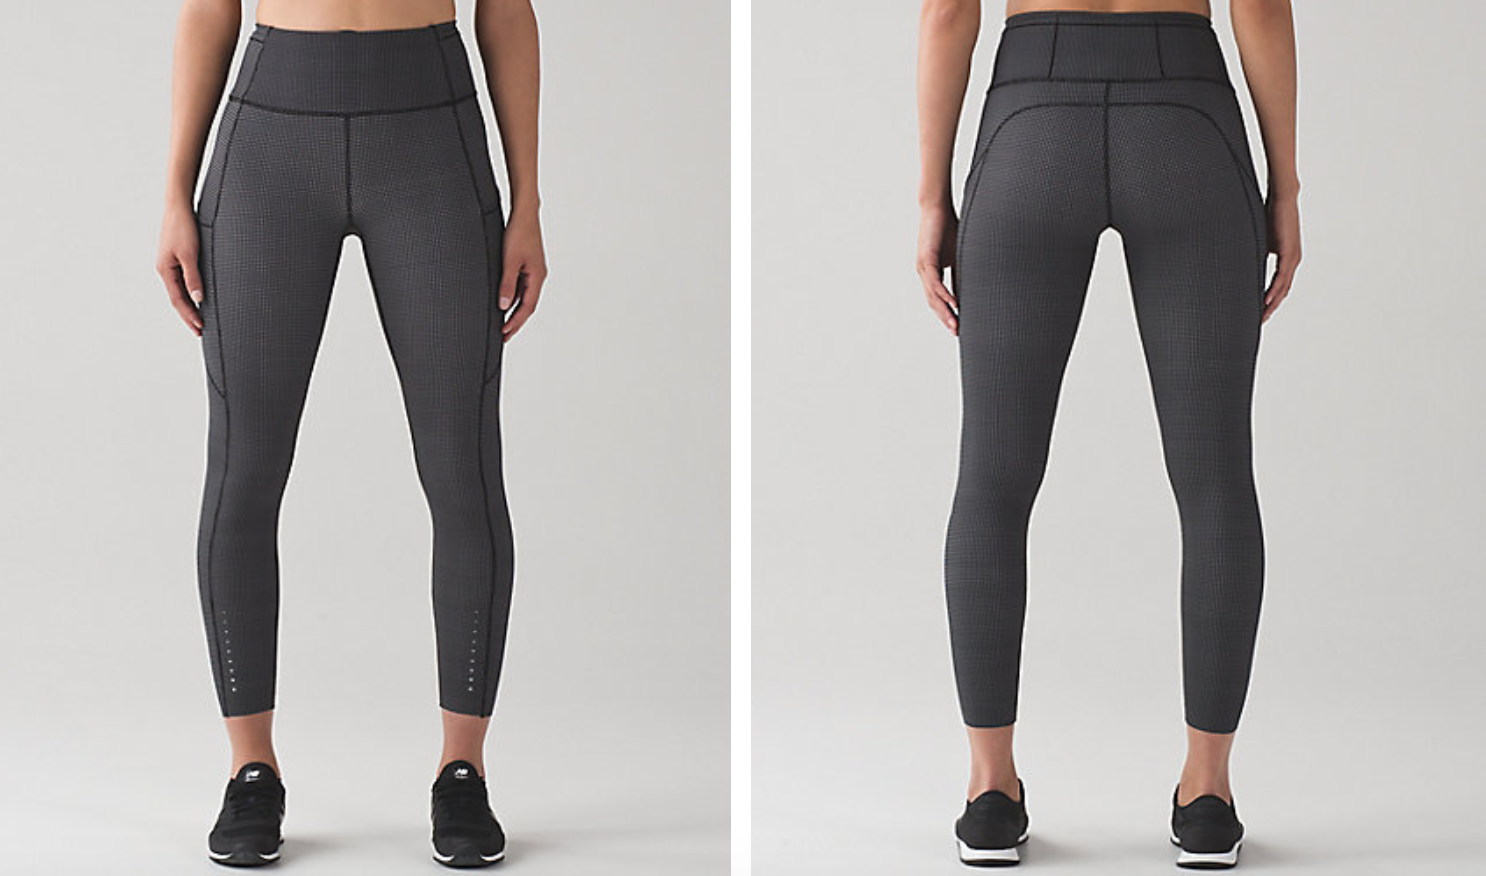 https://api.shopstyle.com/action/apiVisitRetailer?url=https%3A%2F%2Fshop.lululemon.com%2Fp%2Fwomen-pants%2FFast-And-Free-7-8Th-Tight%2F_%2Fprod8351449%3Frcnt%3D18%26N%3D1z13ziiZ7z5%26cnt%3D46%26color%3DLW5AN3S_027916&site=www.shopstyle.ca&pid=uid6784-25288972-7